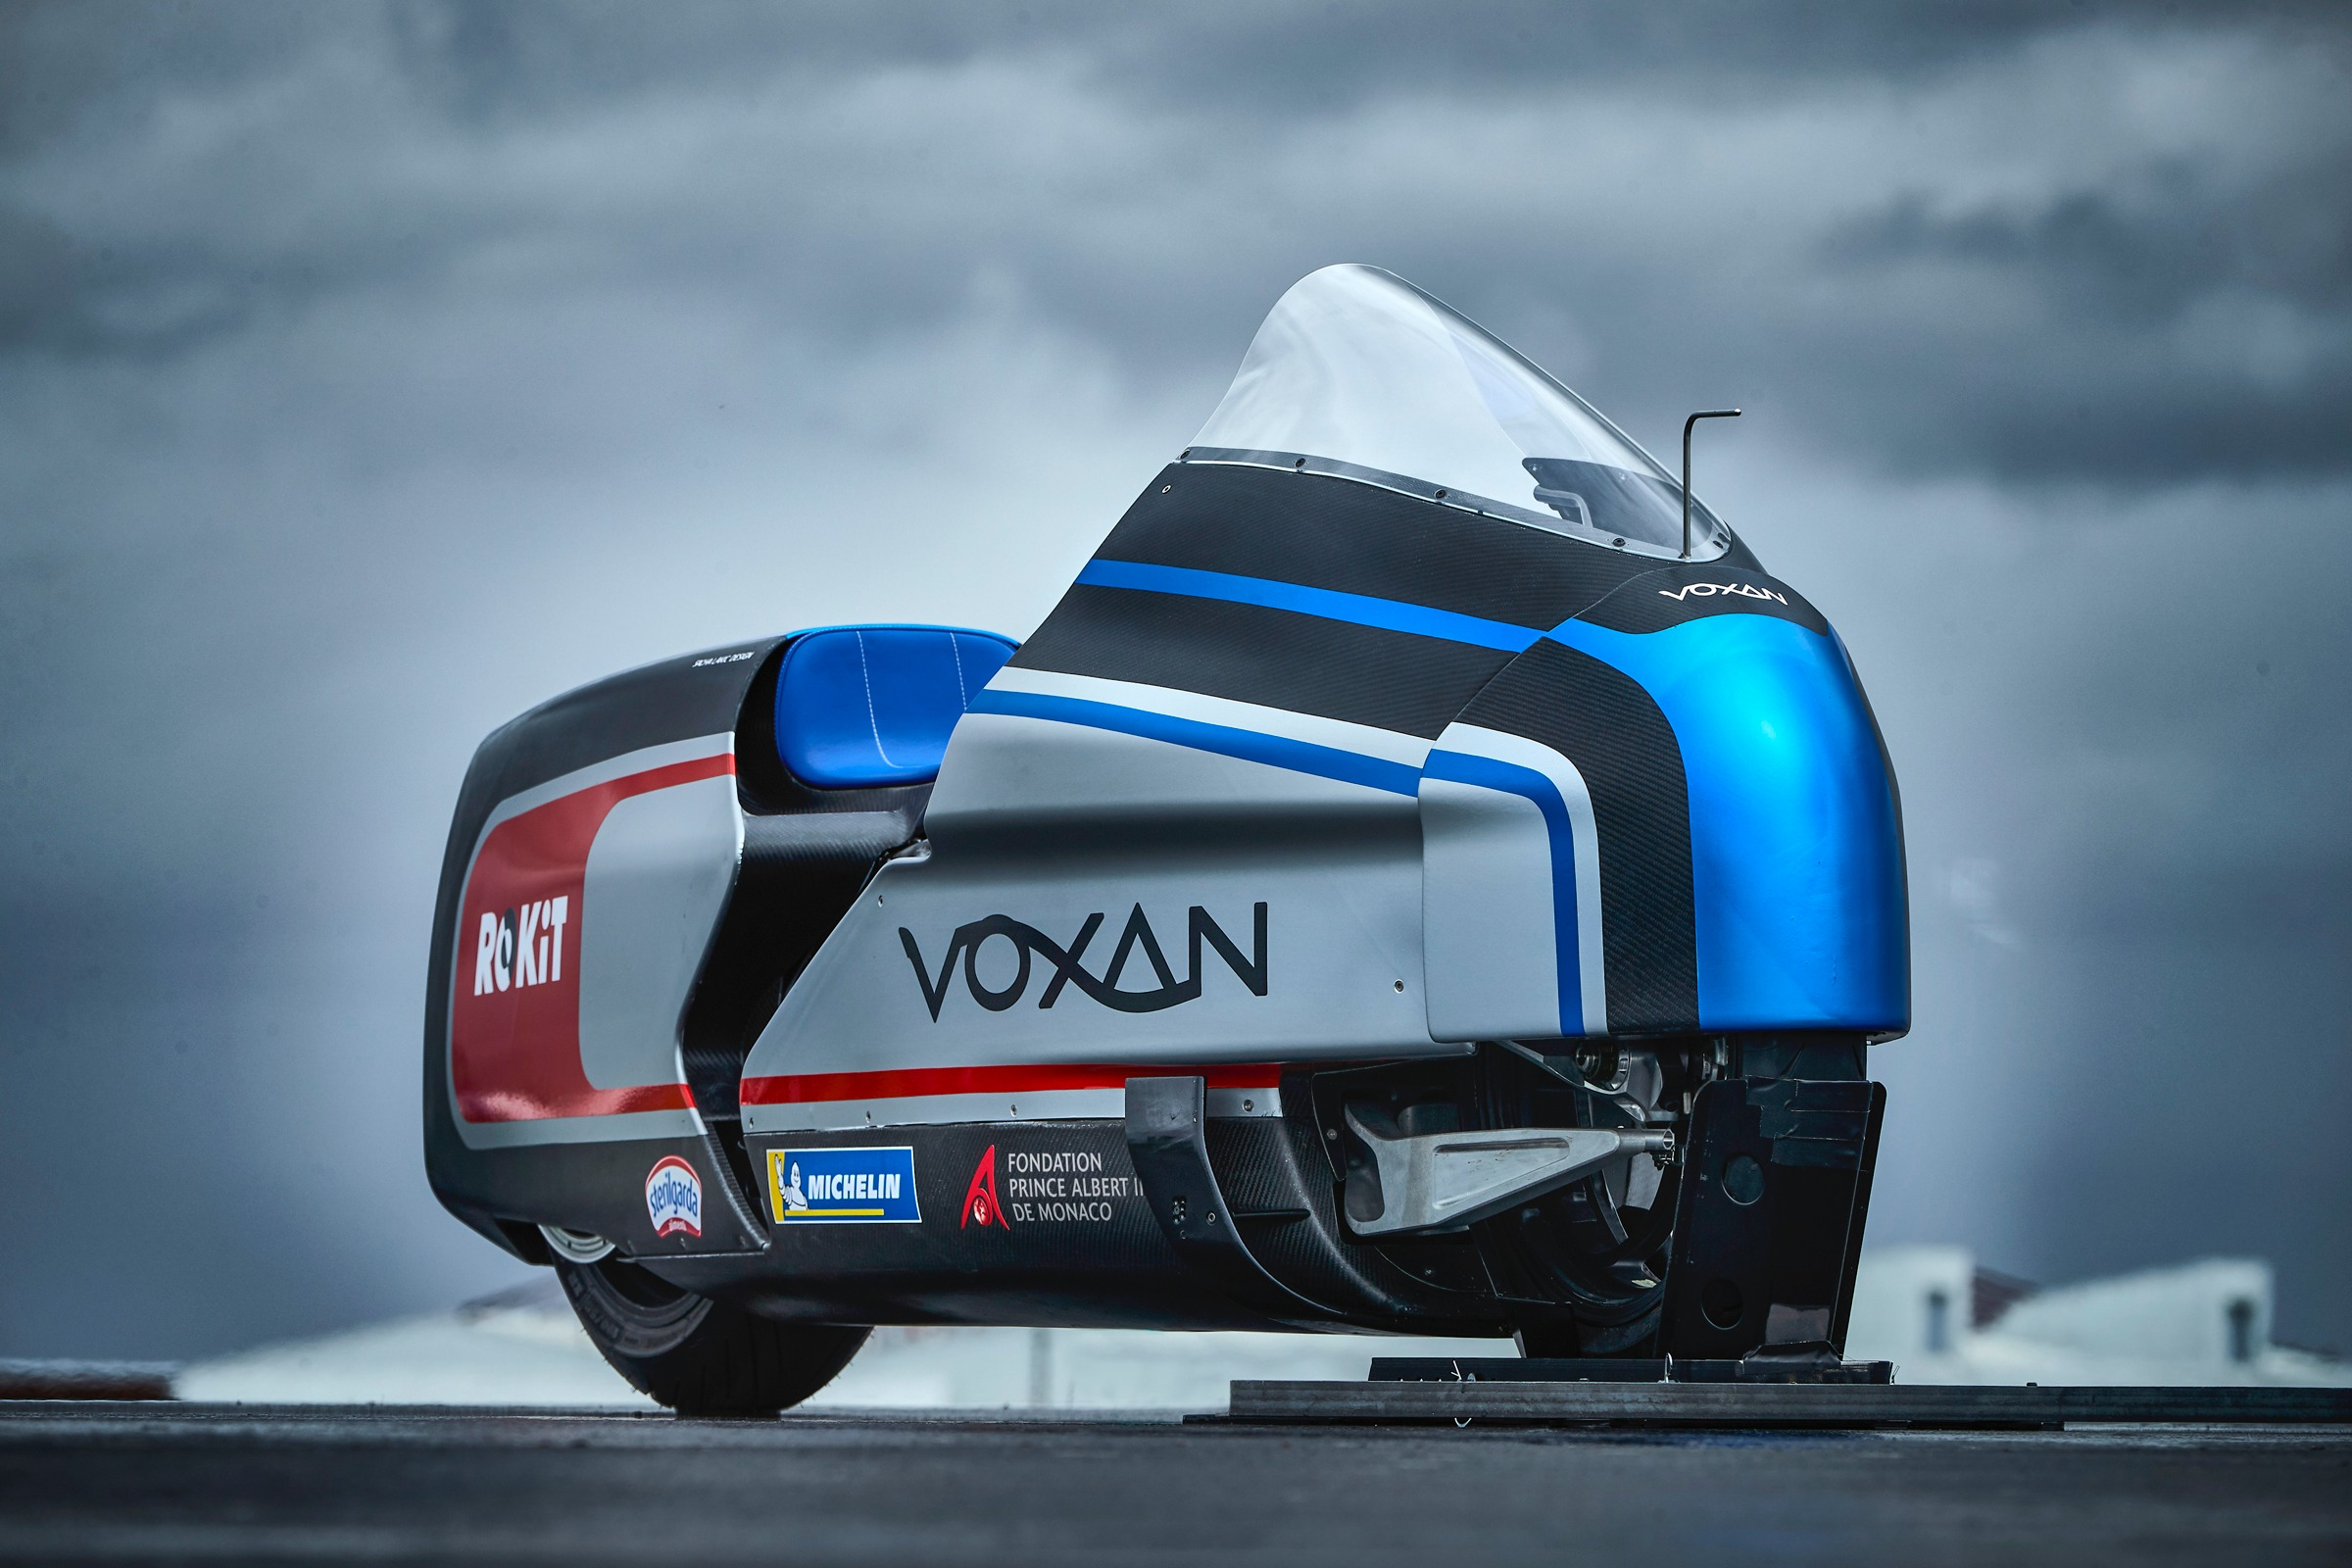 The insane electric bike bidding for a land speed record